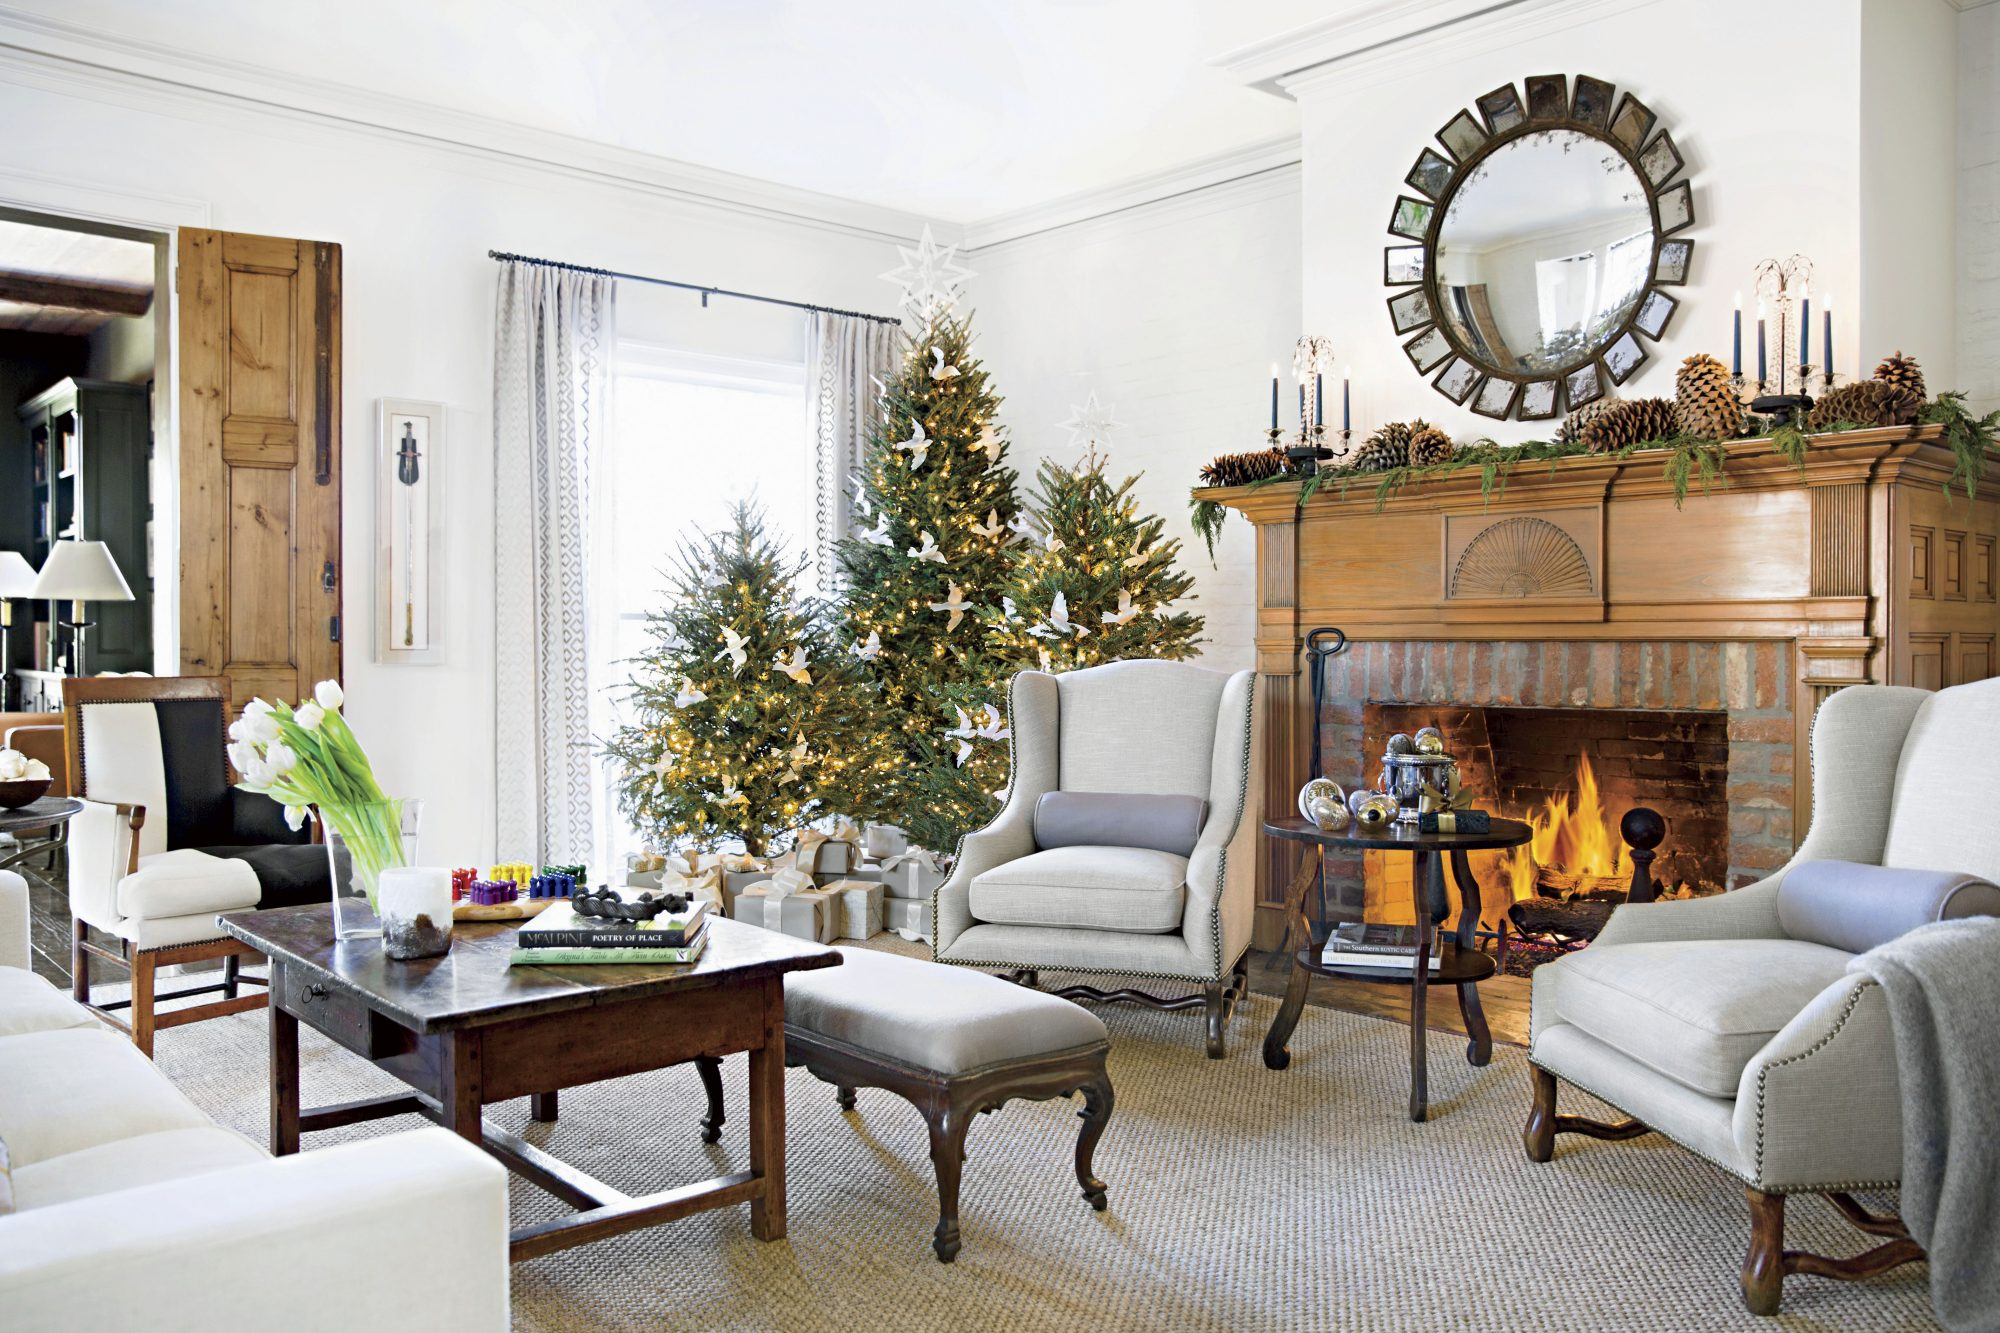 A. Hays Town Baton Rouge Home Living Room at Christmas